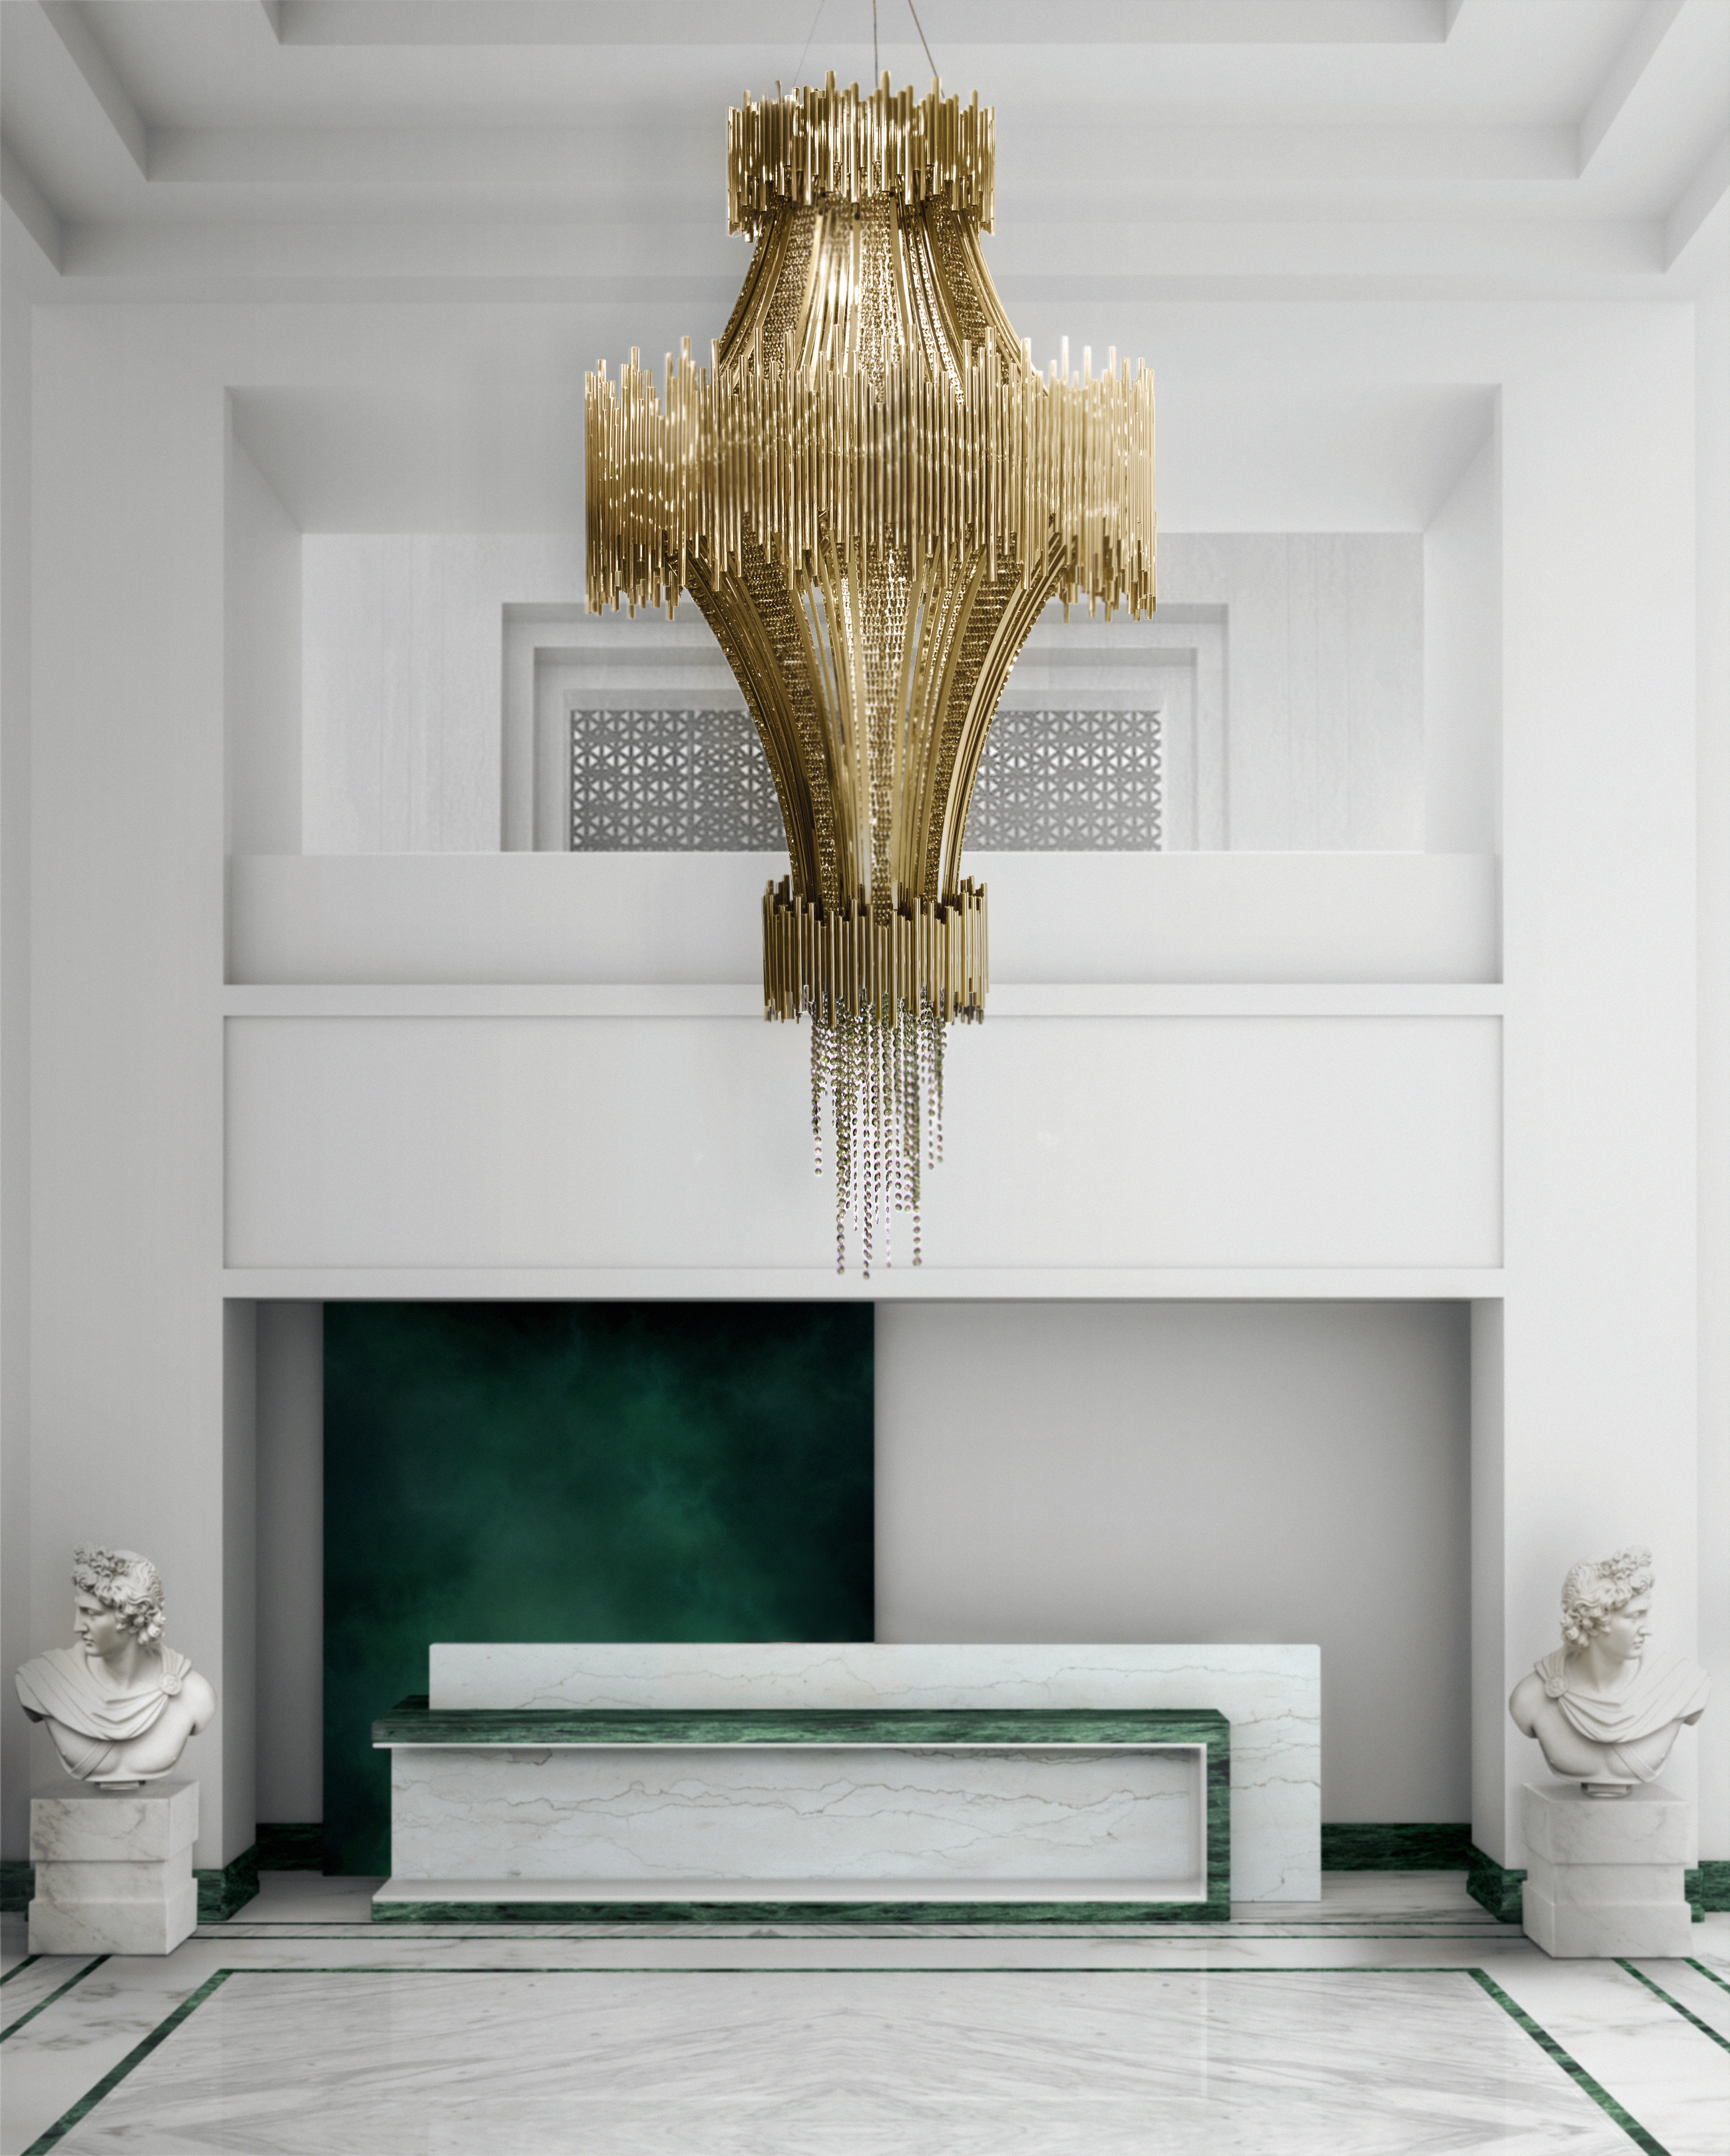 "^ABA866FD0574B04FFDF2E59EEA5775BC84B6307C13B8F94B1F^pimgpsh_fullsize_distr Chandelier Get inspired with the free e-Book ""100 Luxury Chandeliers""  ABA866FD0574B04FFDF2E59EEA5775BC84B6307C13B8F94B1F pimgpsh fullsize distr"